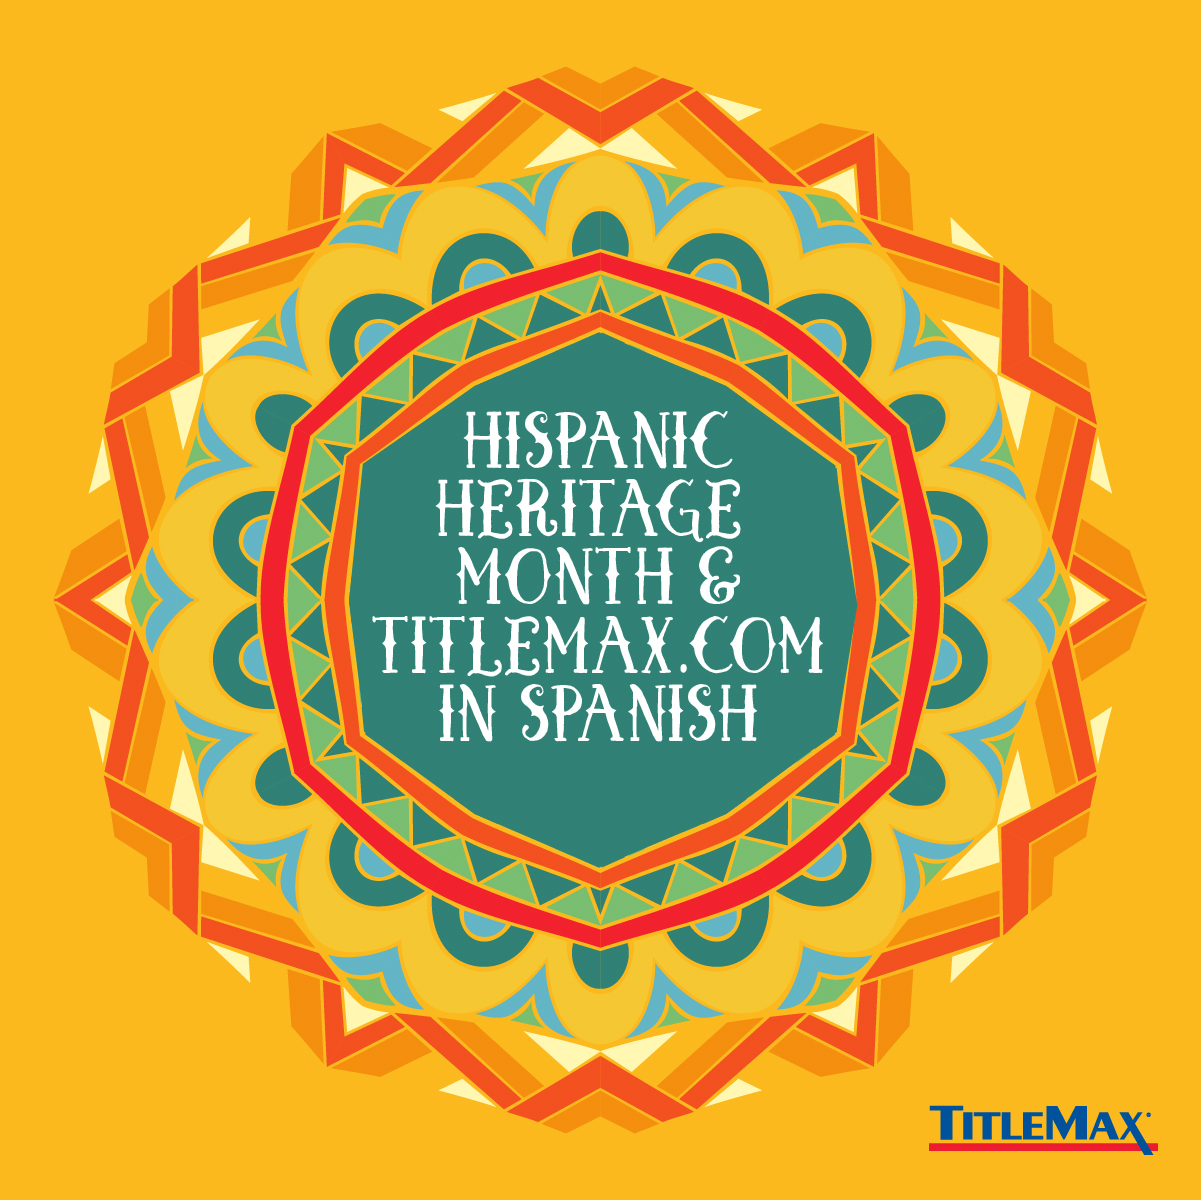 Hispanic Heritage Month - TitleMax in Spanish